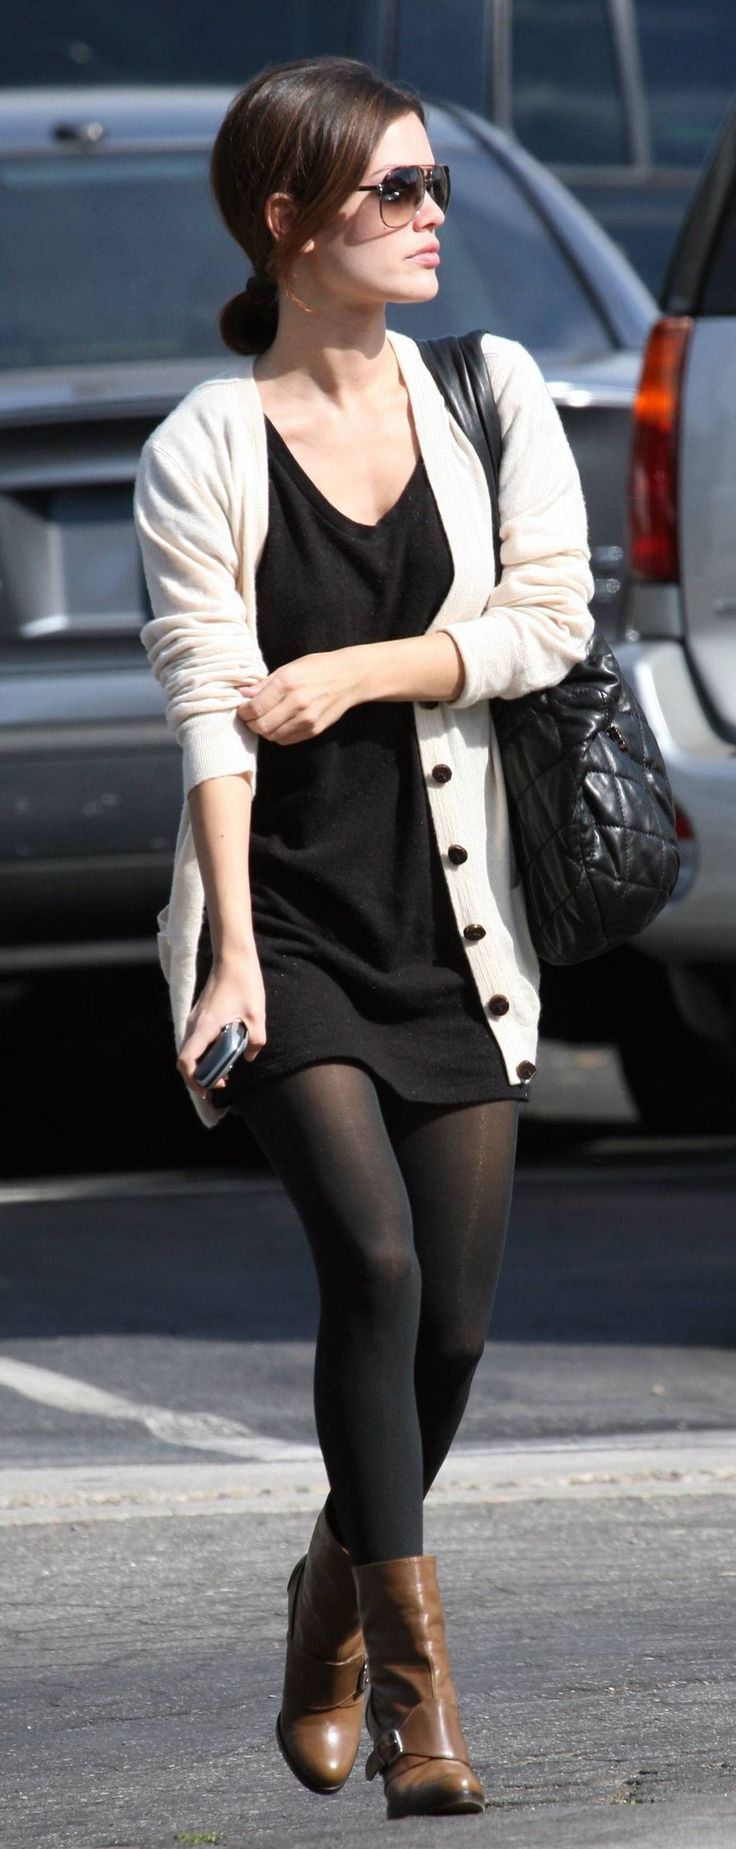 Outfits For Work Trend Outfits For Work Fashion Comfy Work Outfit Fashion Black Tights Outfit [ 1849 x 736 Pixel ]